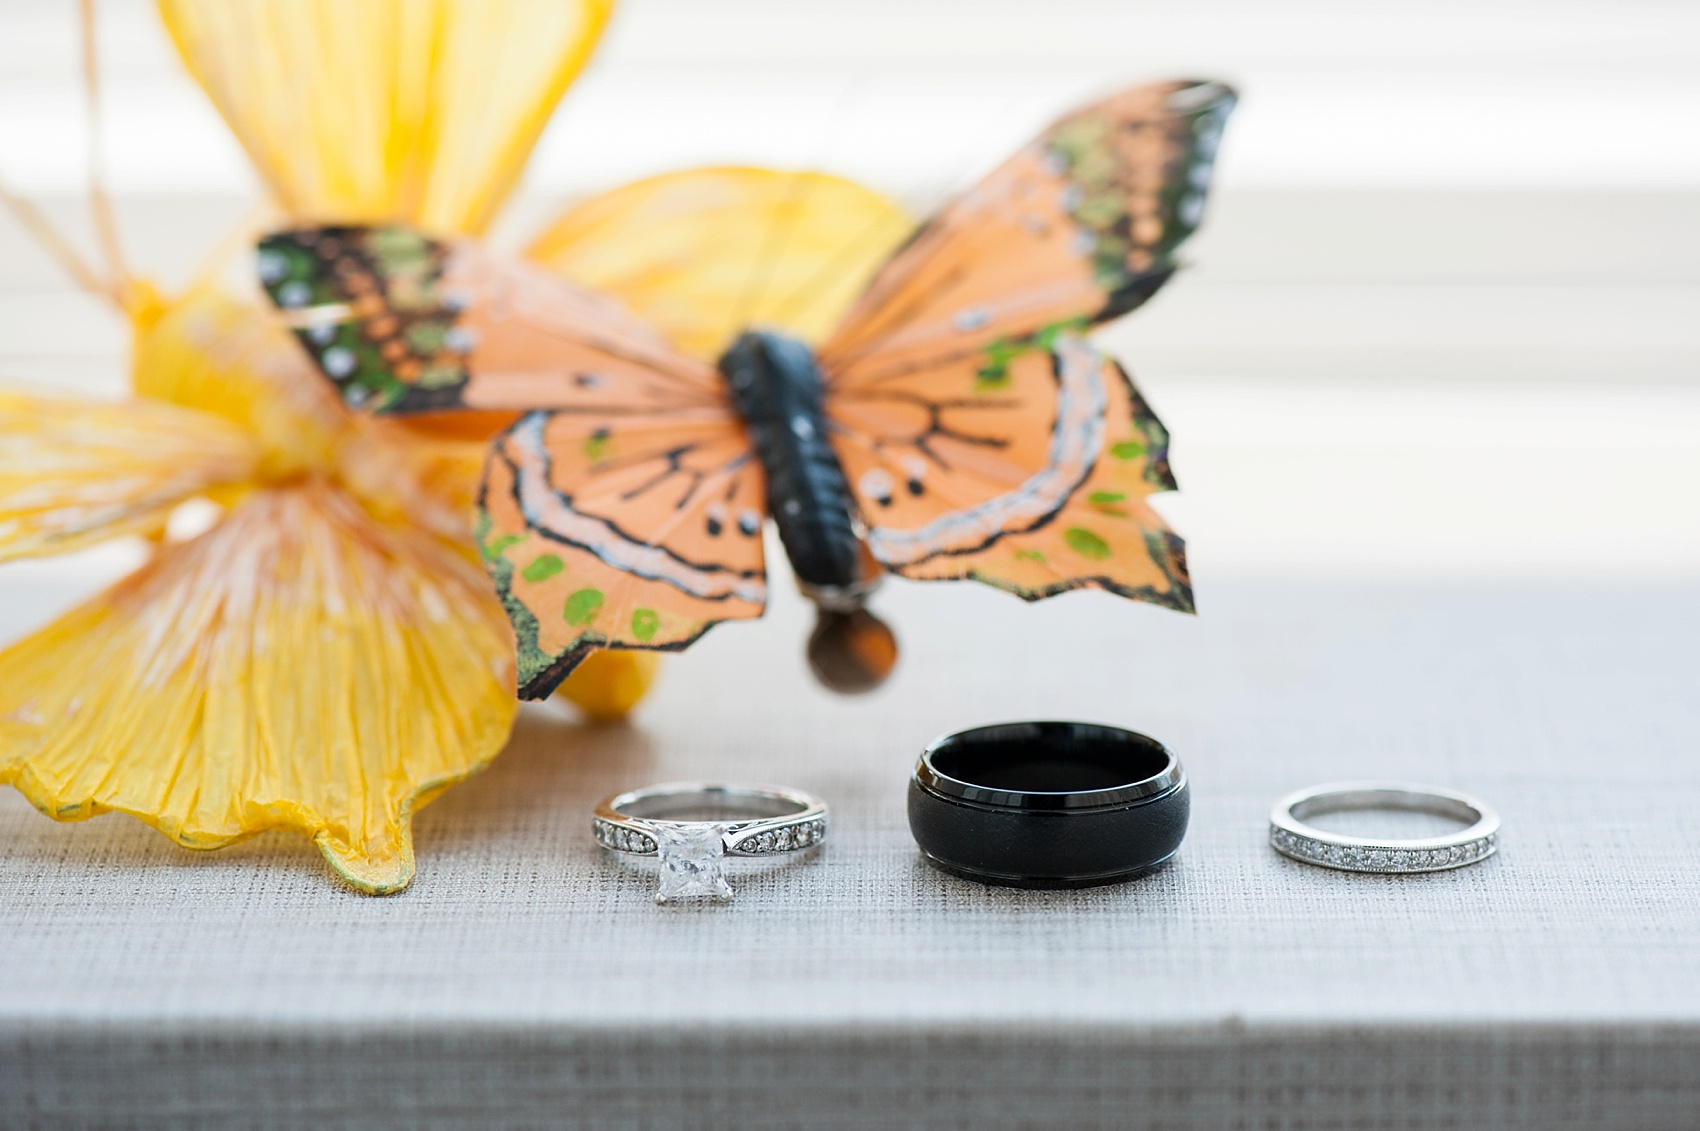 Butterflies to commemorate the bride's mother with their wedding bands. Hollow Brook Golf Club wedding with photos by Mikkel Paige Photography.